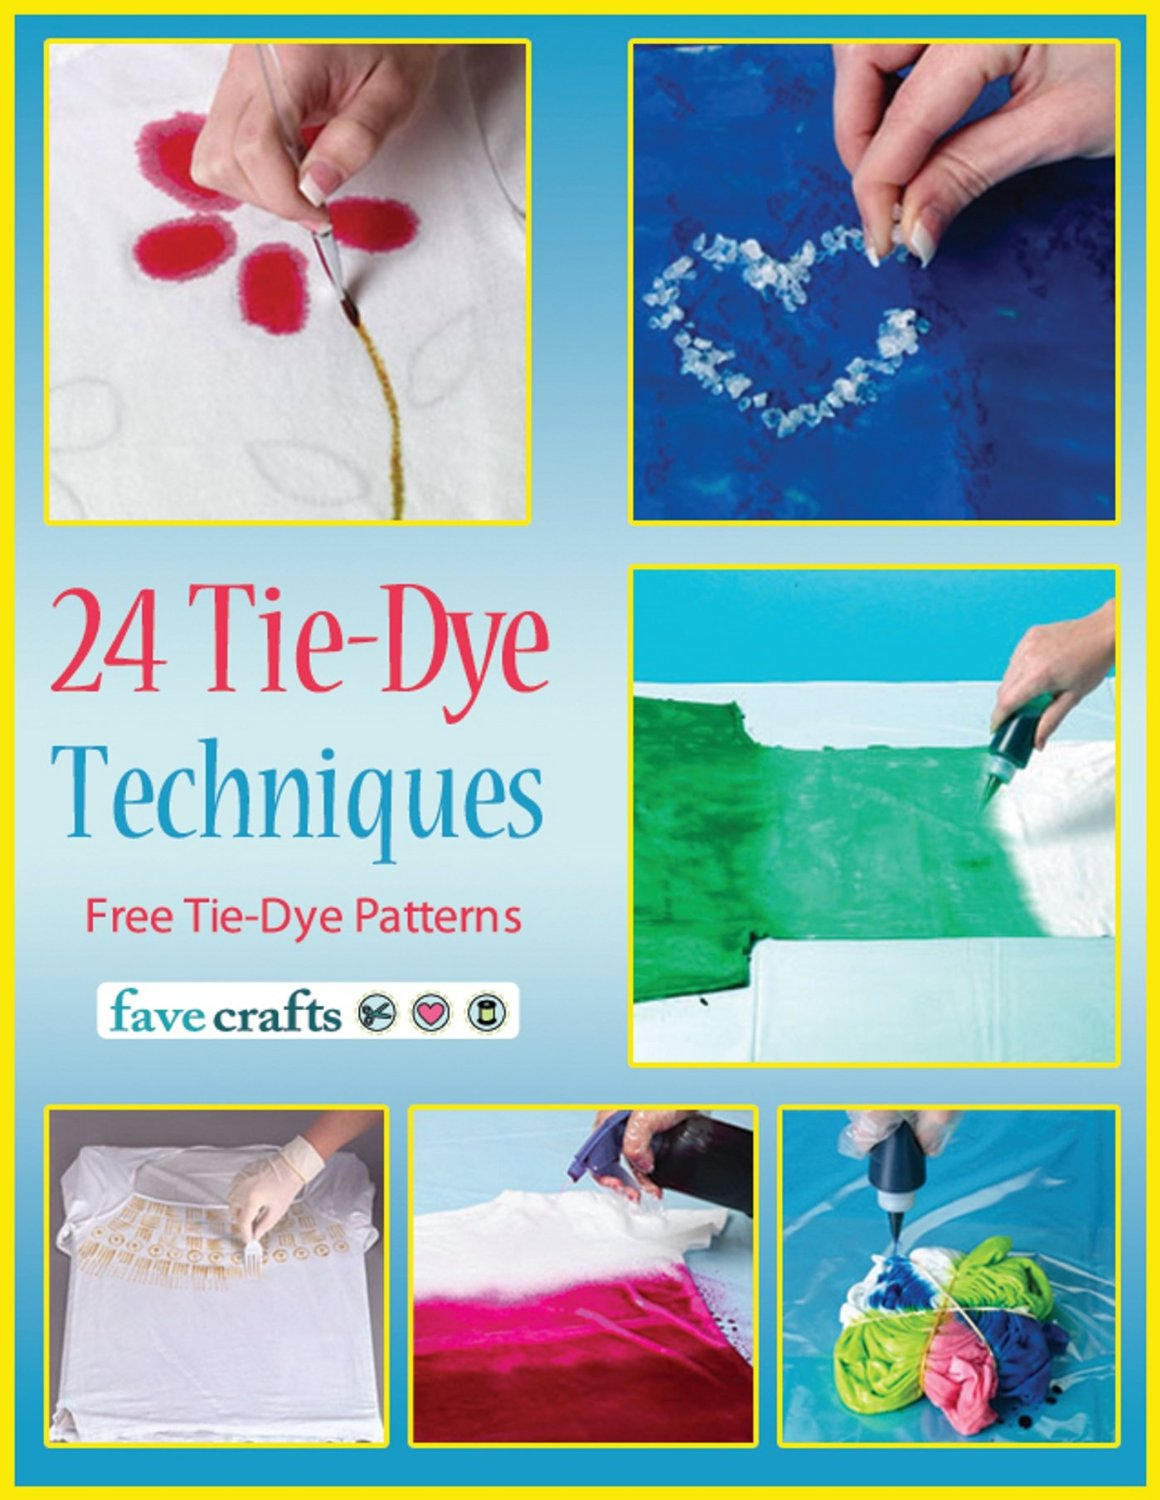 24 Tie-Dye Techniques: Free Tie-Dye Patterns free download